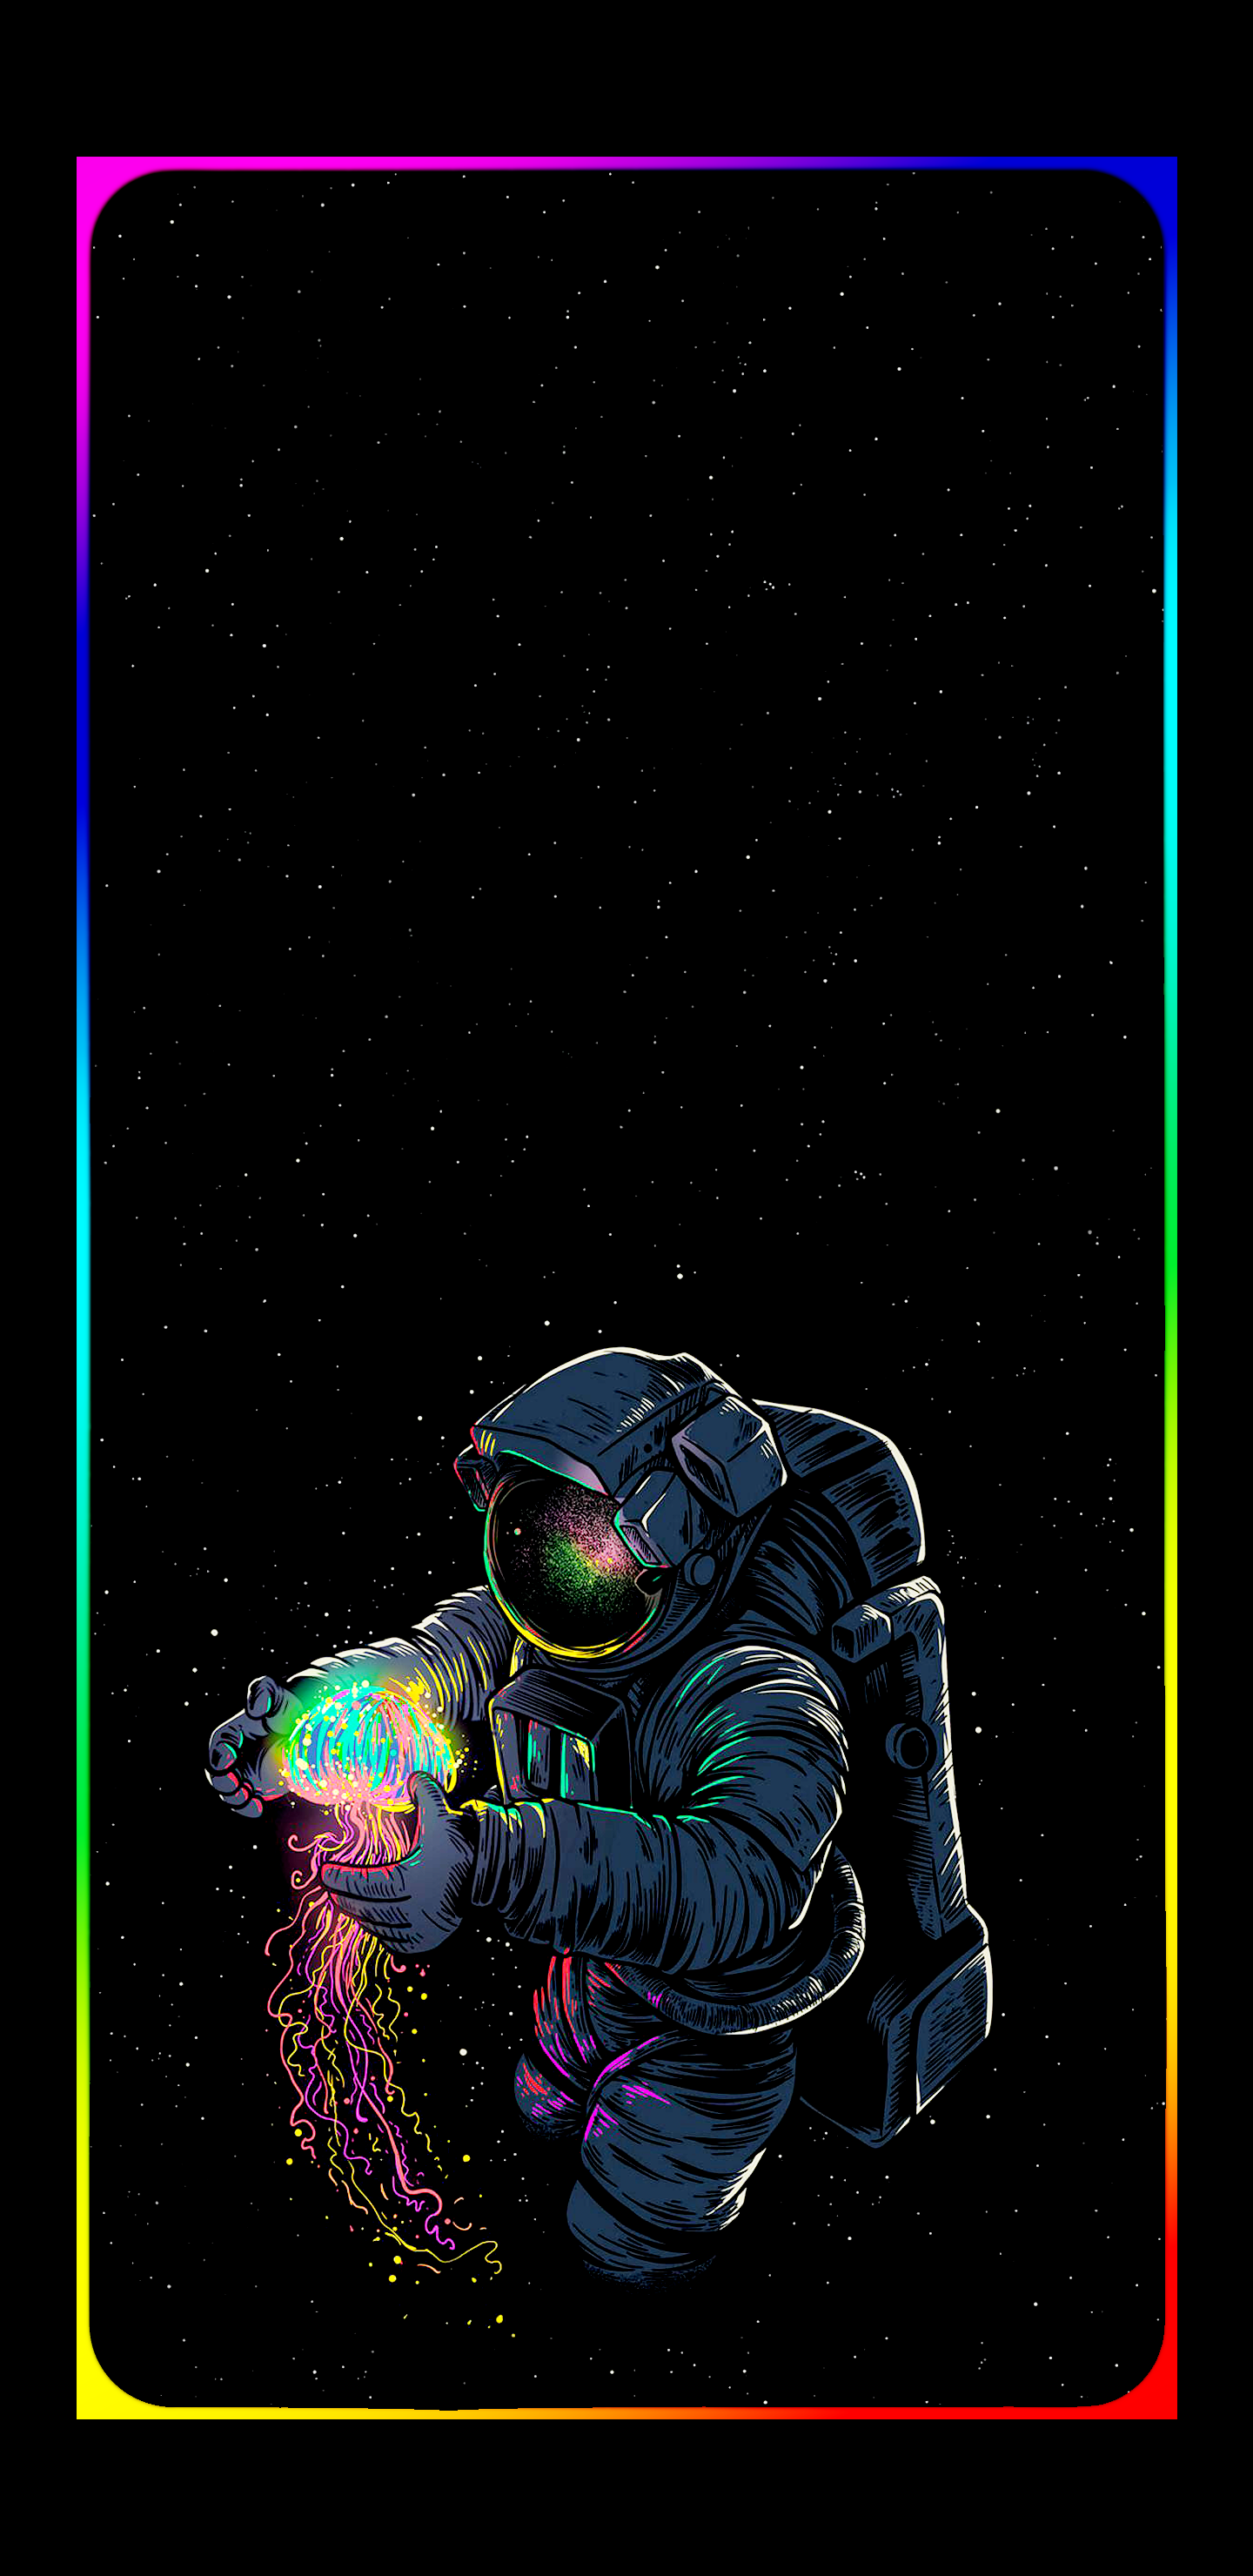 Free Download Galaxy S8 Astronaut With Border 1440x2960 Album On Imgur 1440x2960 For Your Desktop Mobile Tablet Explore 32 Samsung S8 Astronaut Wallpaper Samsung S8 Astronaut Wallpaper Samsung S8